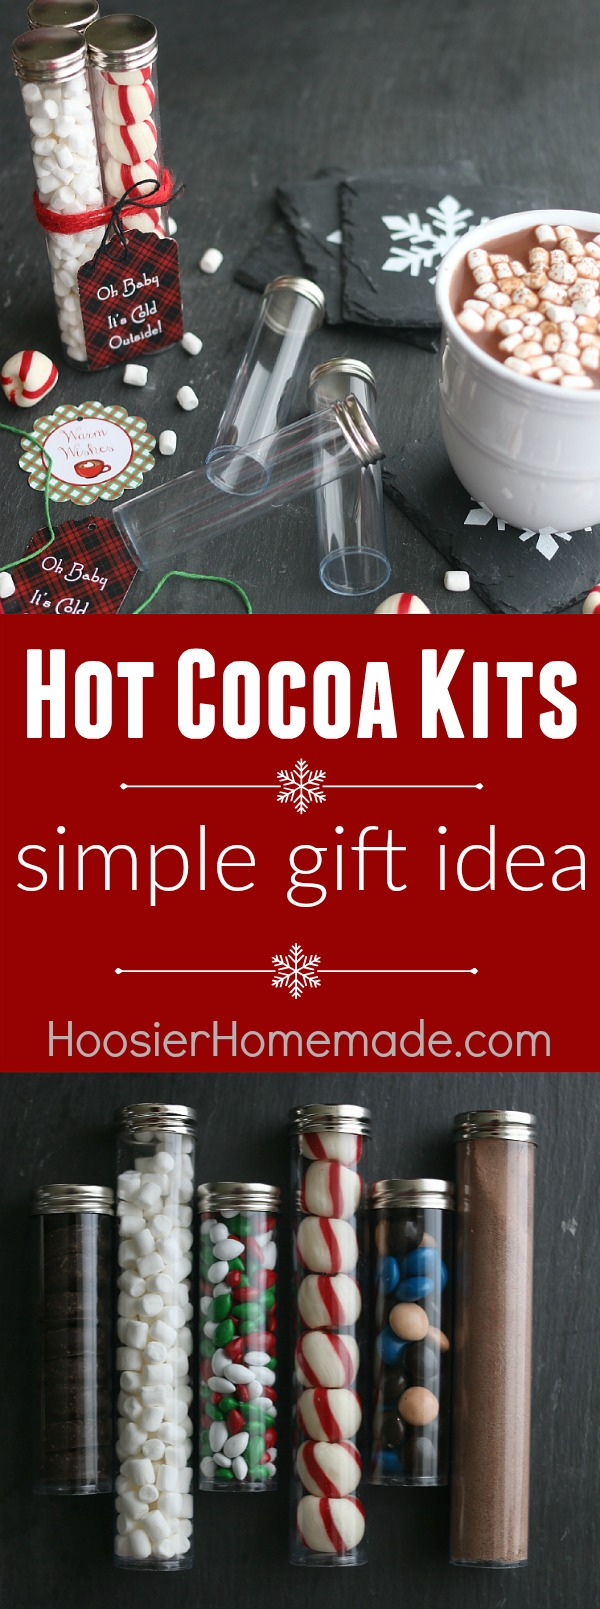 hot-cocoa-kits-pin_-long_-post_